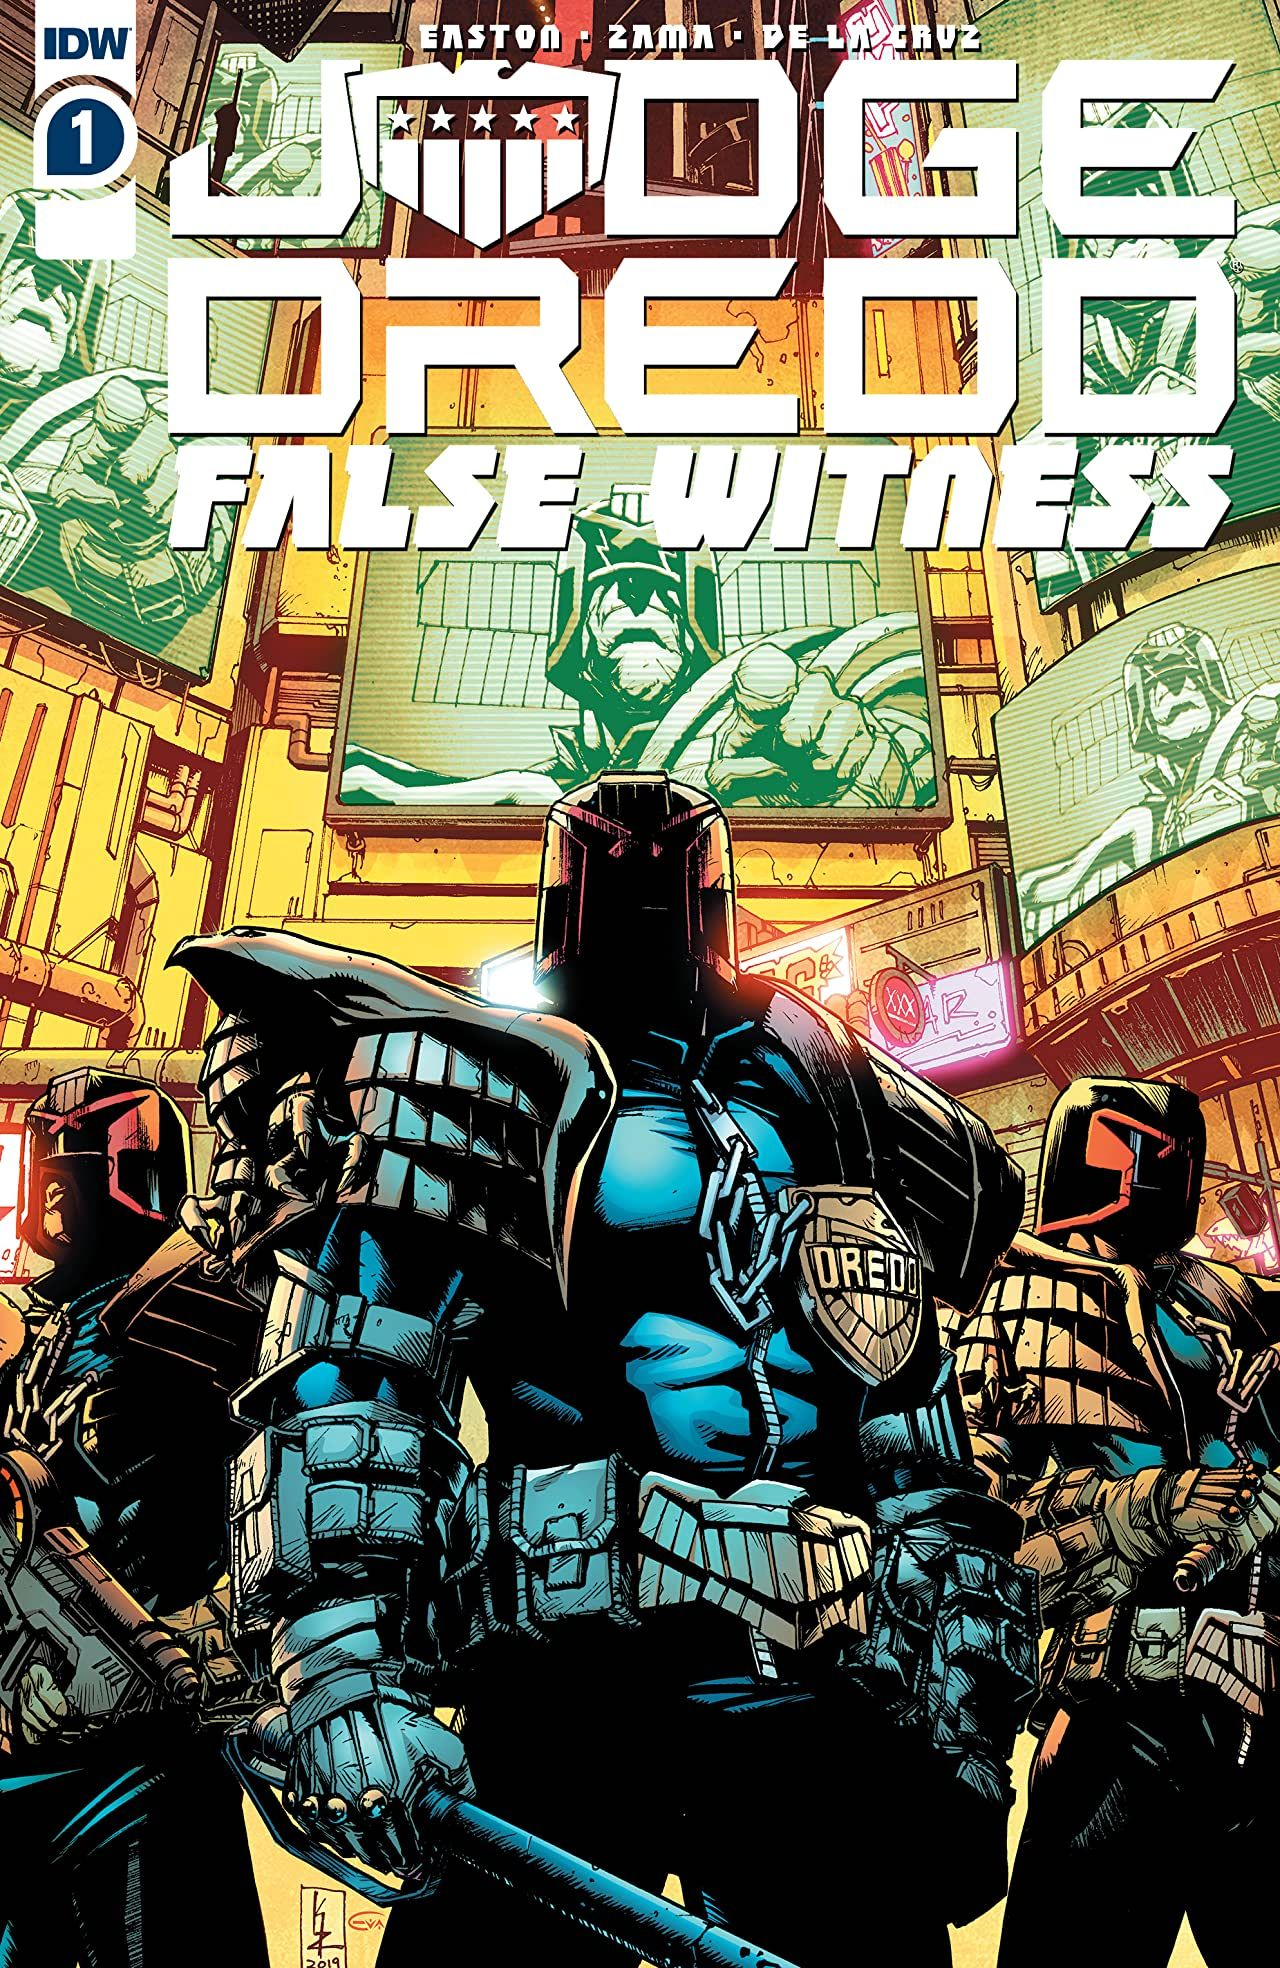 REVIEW: Judge Dredd: False Witness #1 is a Harrowing Dredd Yarn